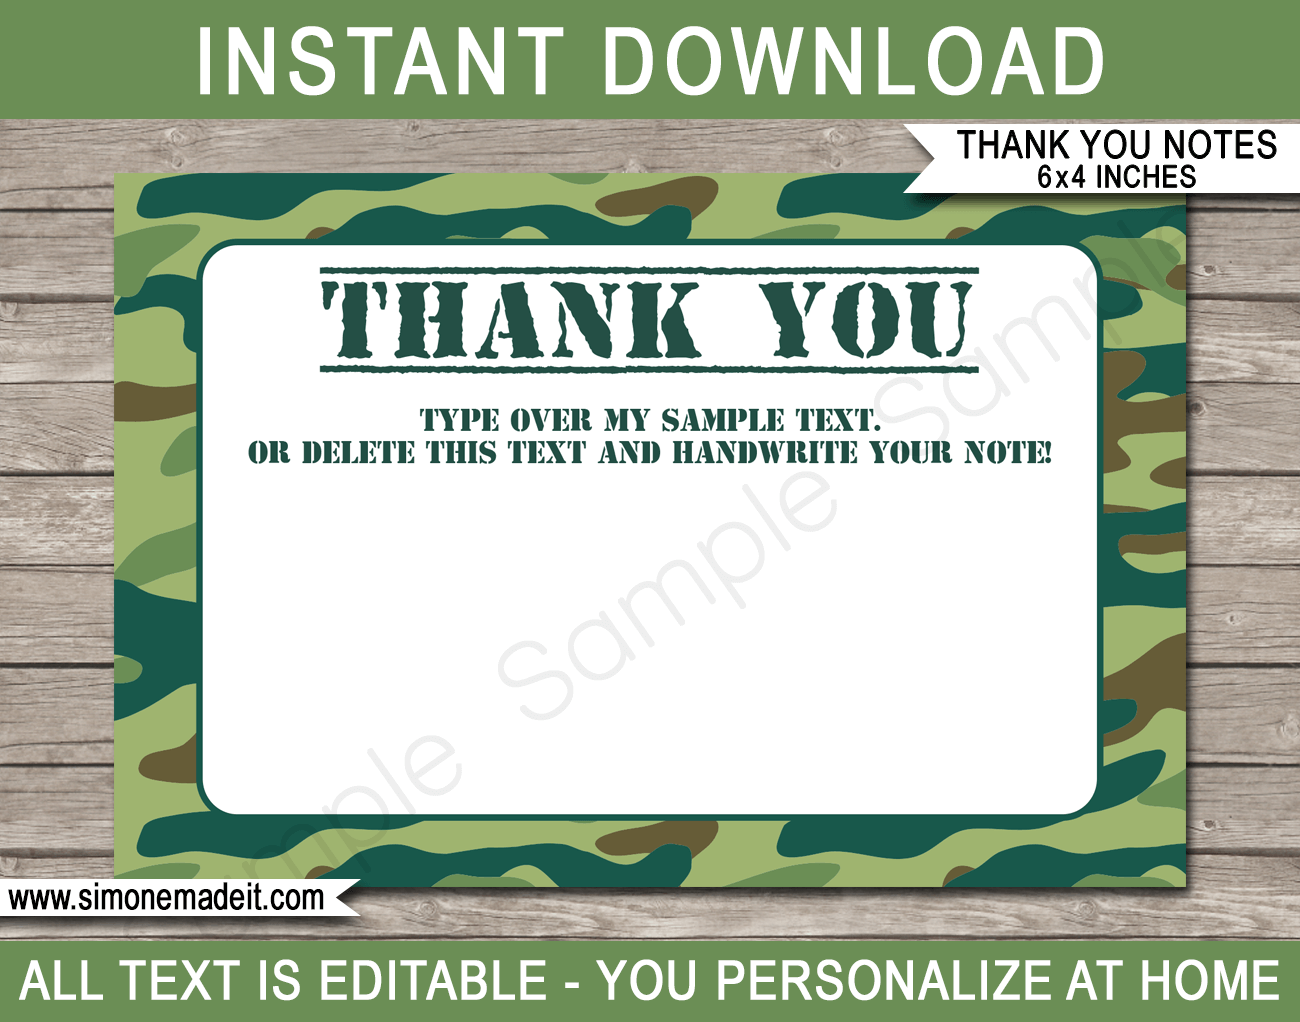 Printable Green Camo Thank You Cards - Favor Tags - Army Birthday Party theme - Editable Template - Instant Download via simonemadeit.com